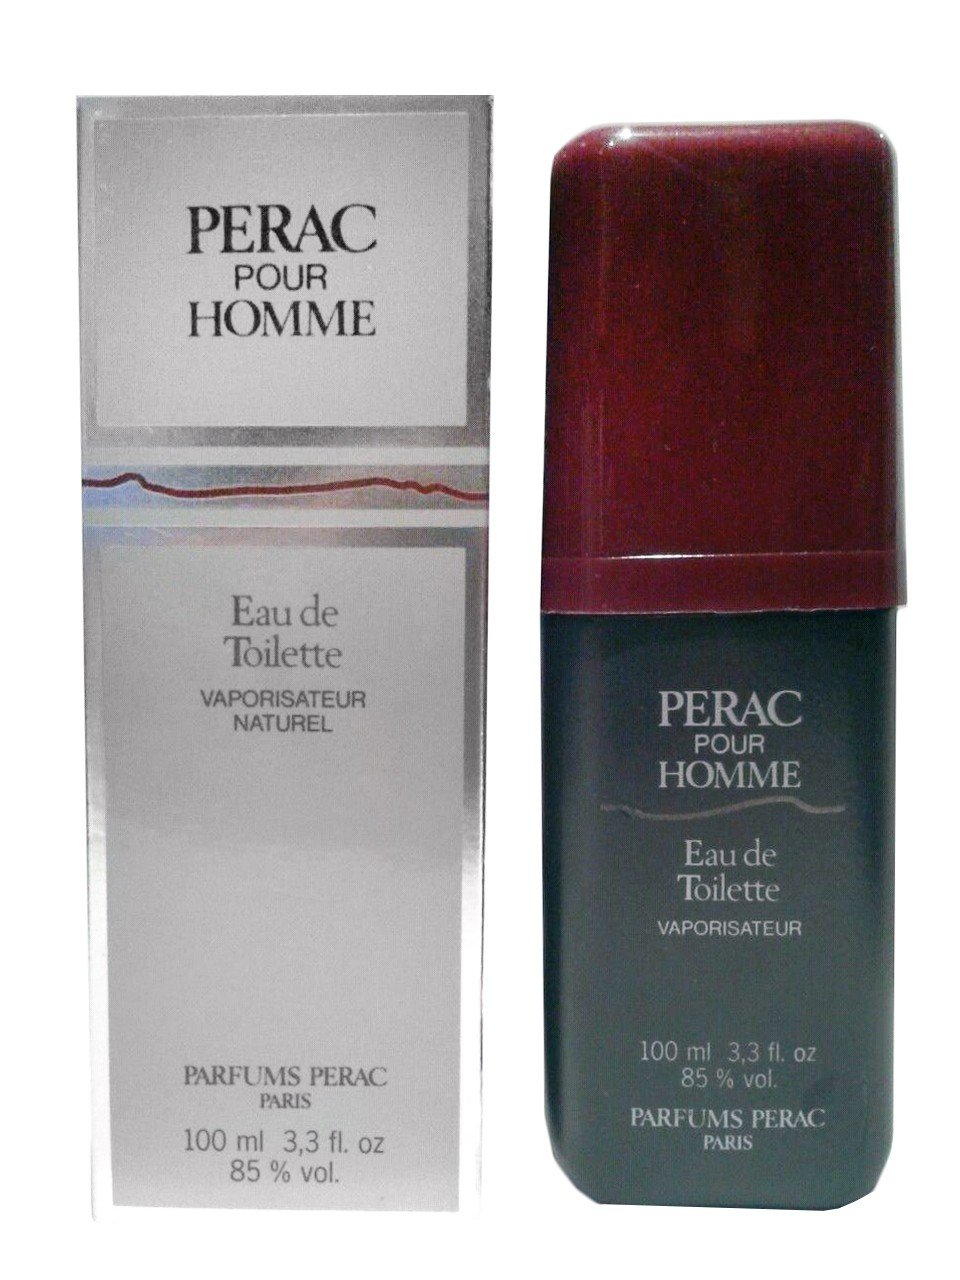 Parfums perac perac pour homme eau de toilette reviews for Arrivee d eau toilette